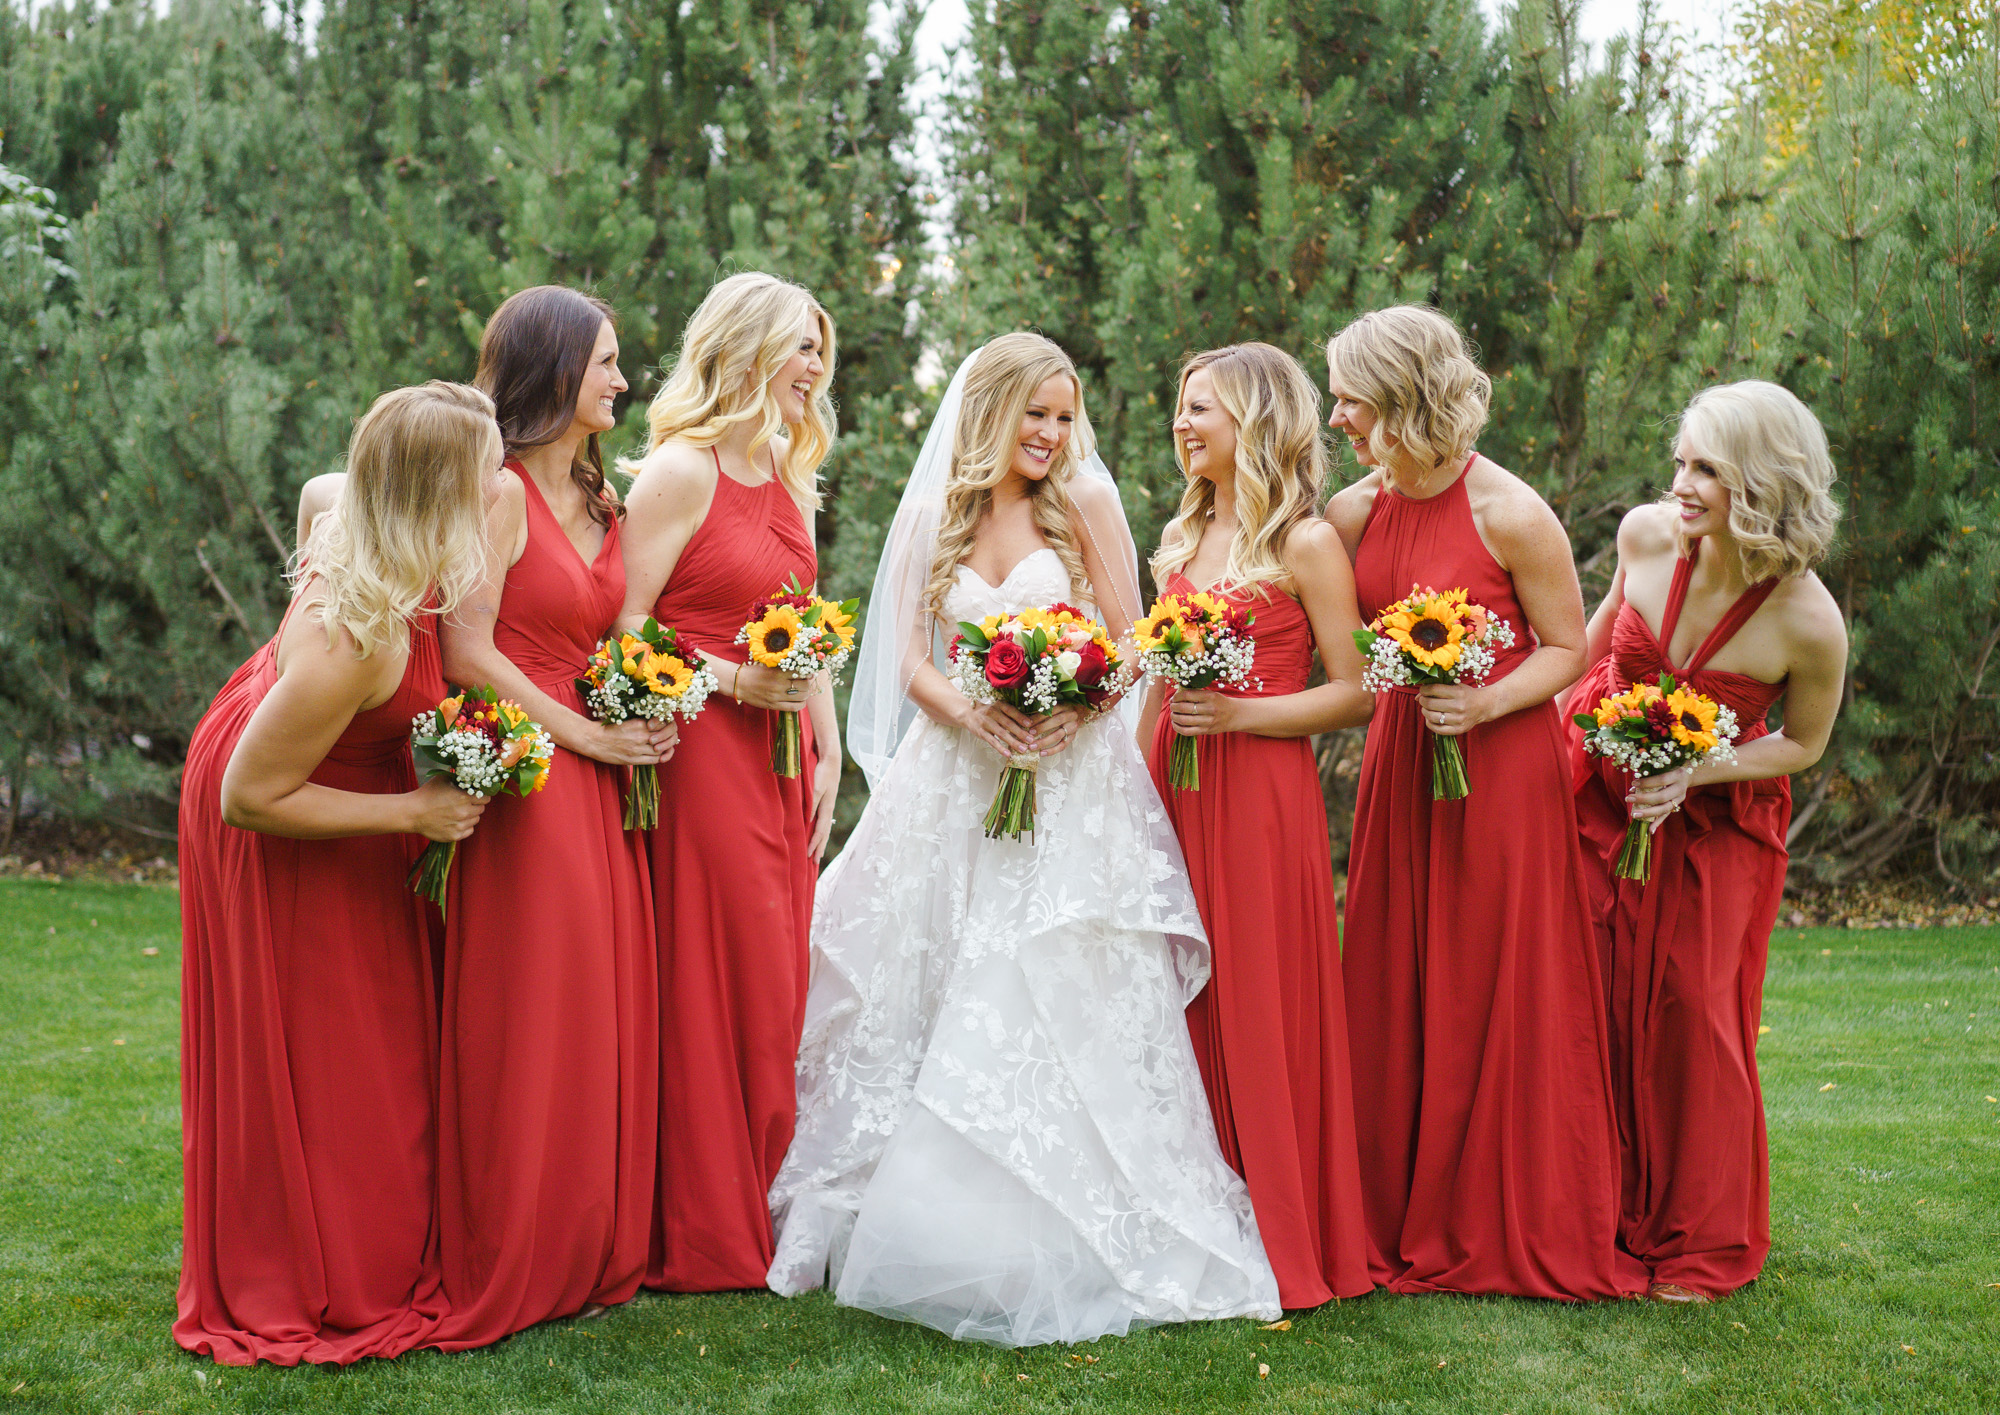 bridal party in red gowns spokane real wedding